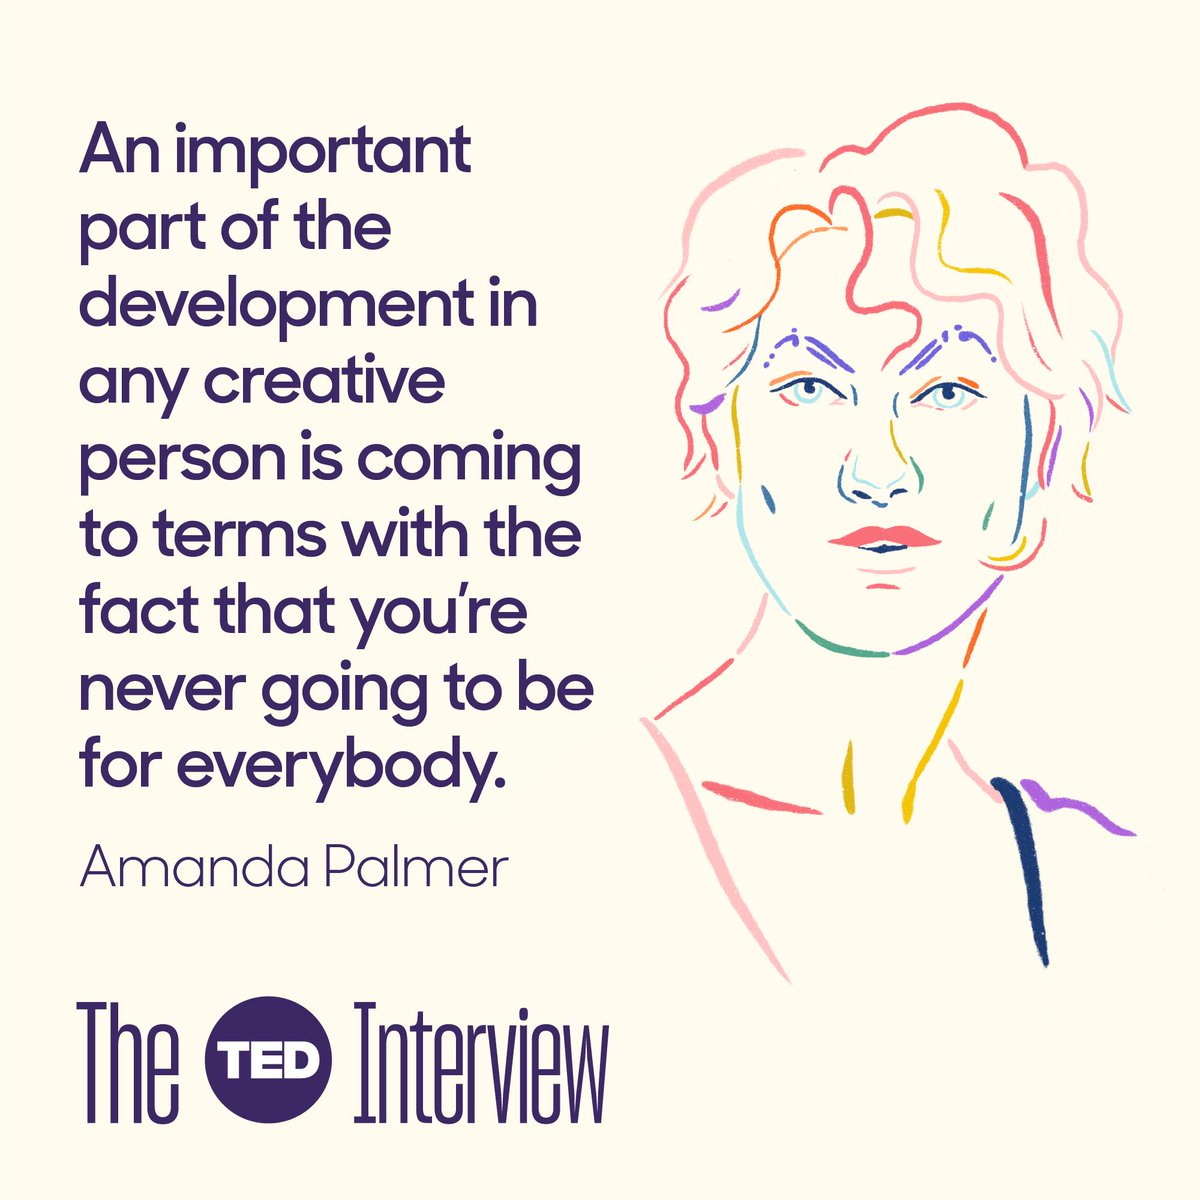 .@AmandaPalmer opens up about facing criticism and sharing deeply personal truths through her music. Learn more about one of the most unique voices in music on this episode of #TheTEDInterview. Listen on @Spotify: http://t.ted.com/JdIpXtX